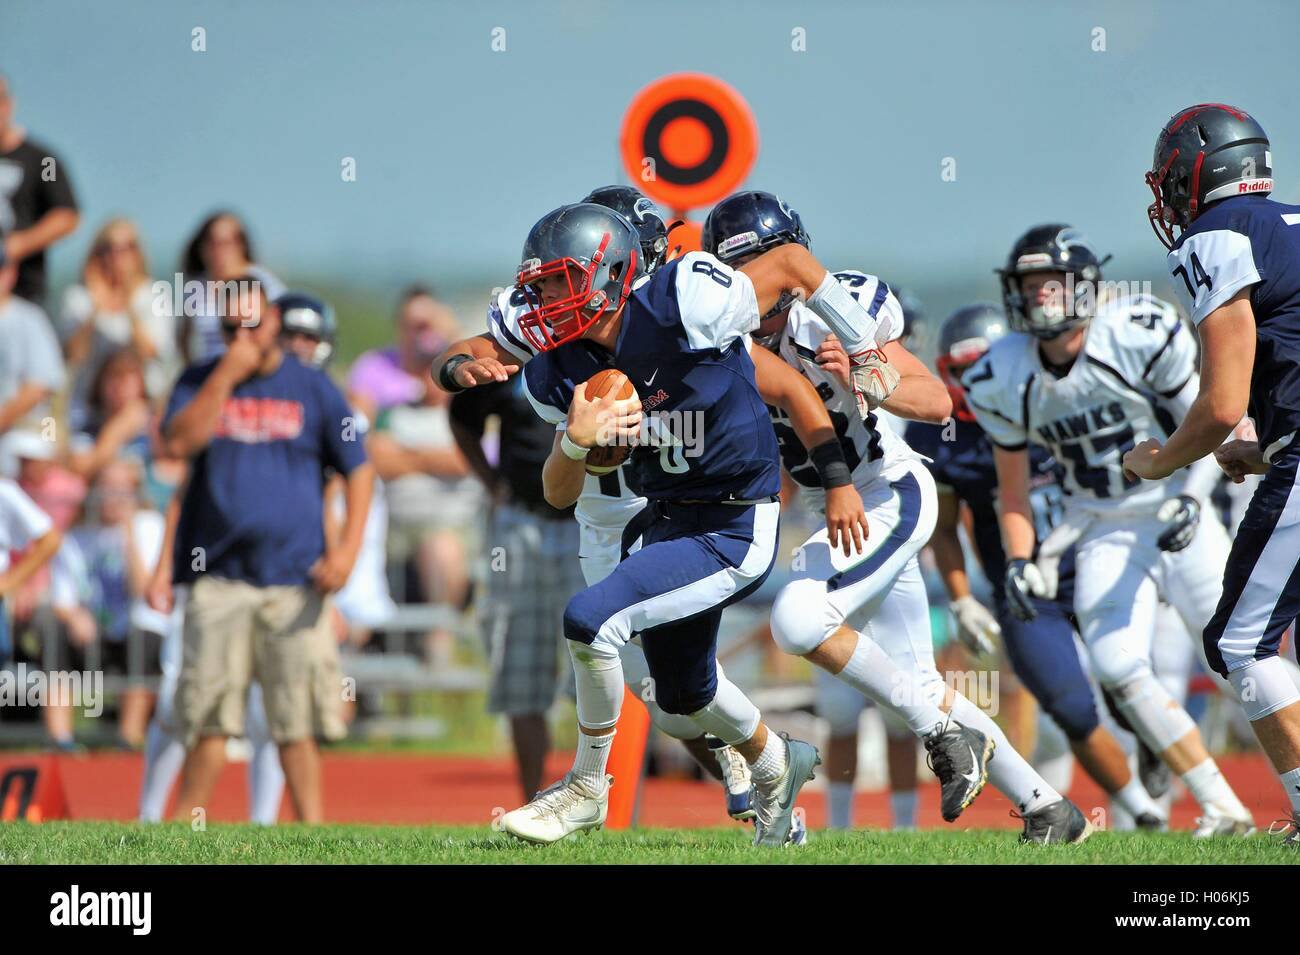 A high school quarterback on the loose scrambling for yardage against into the open and a first down. USA. - Stock Image